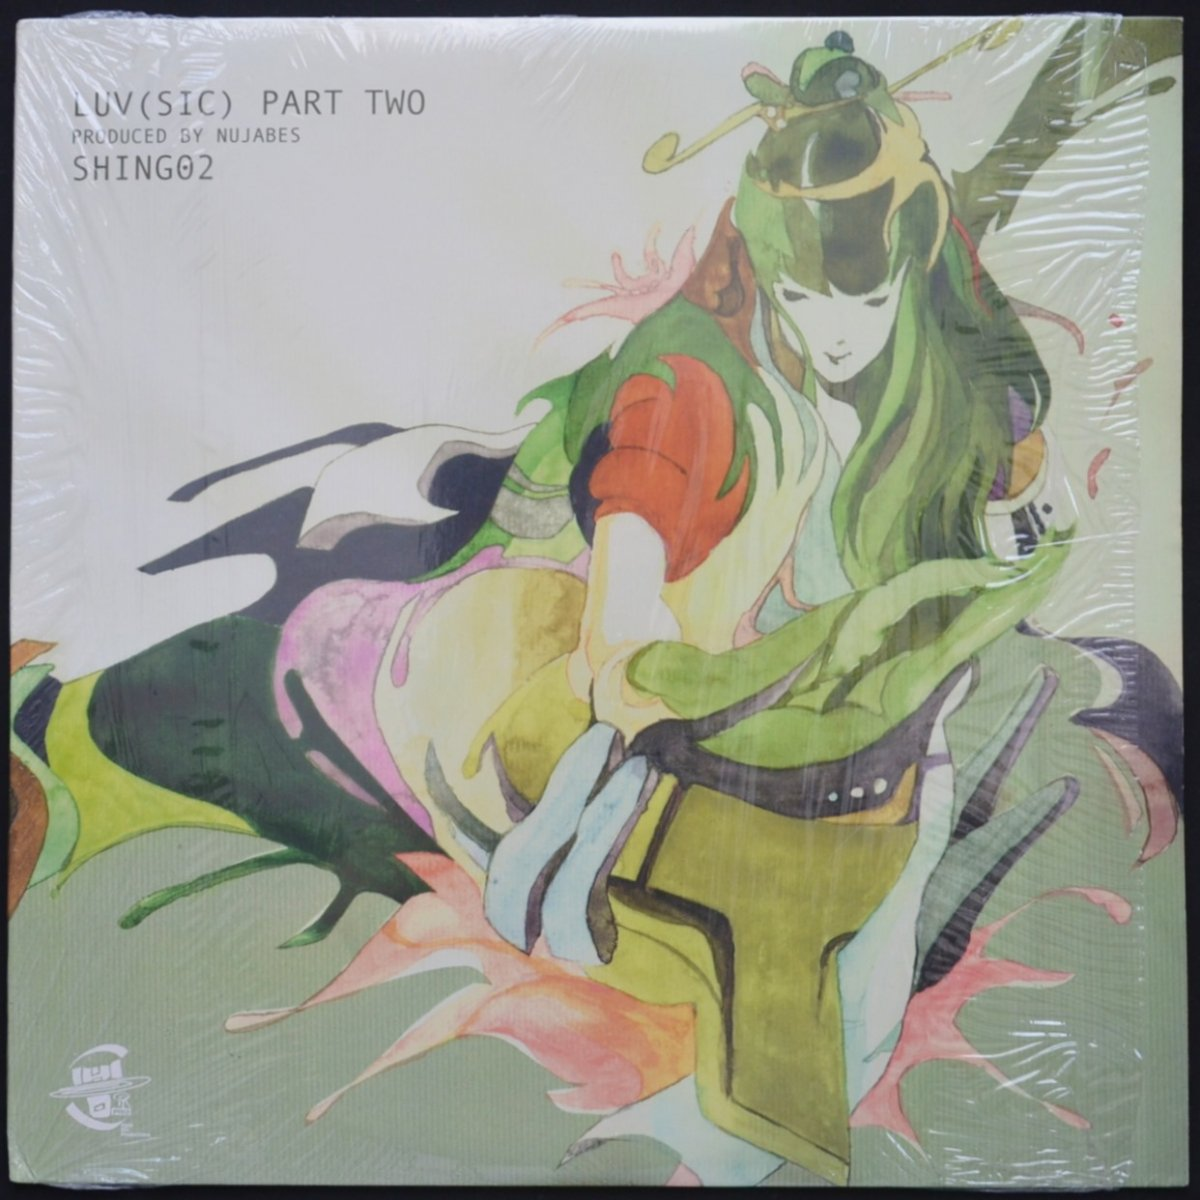 NUJABES FEATURING SHING02 / LUV(SIC) PART TWO (12